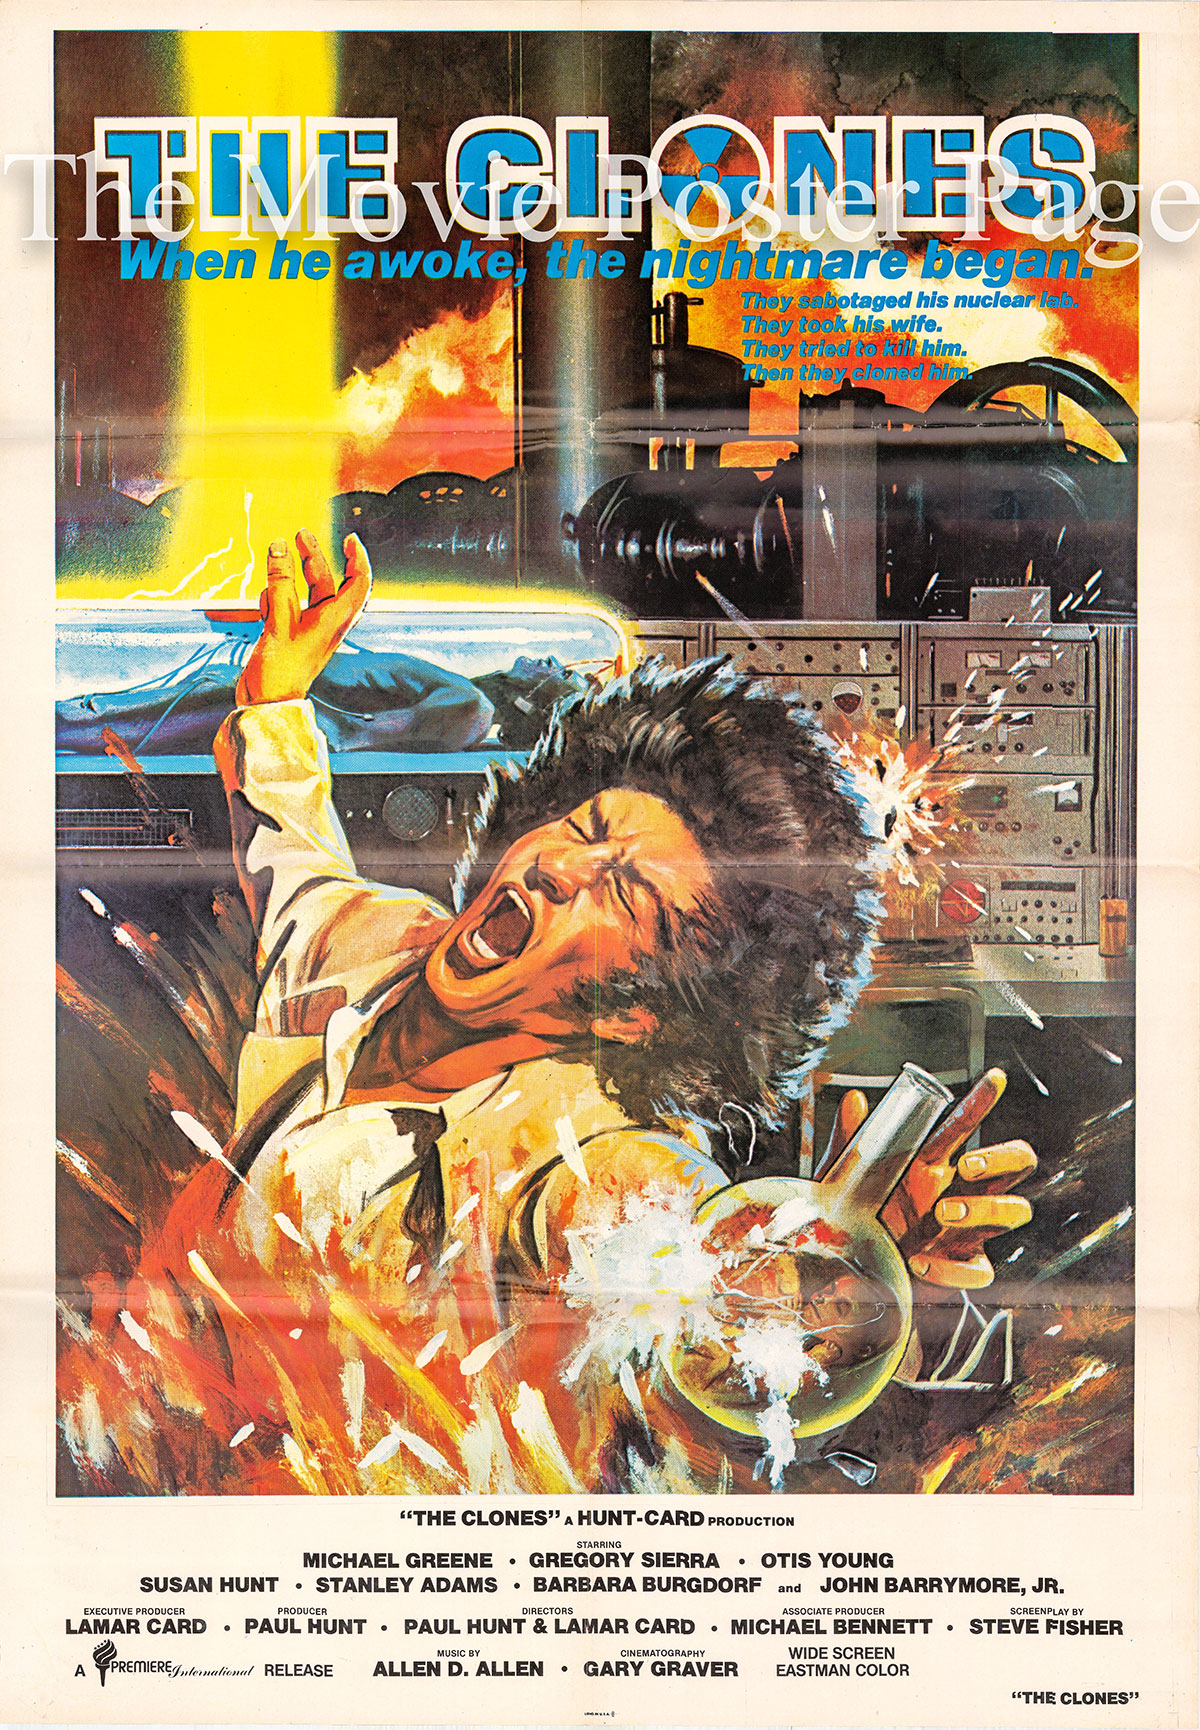 Pictured is a Premier International video poster for a 1985 rerelease of the 1973 Lamar Card and Paul Hunt film The Clones, starring Michael Greene.